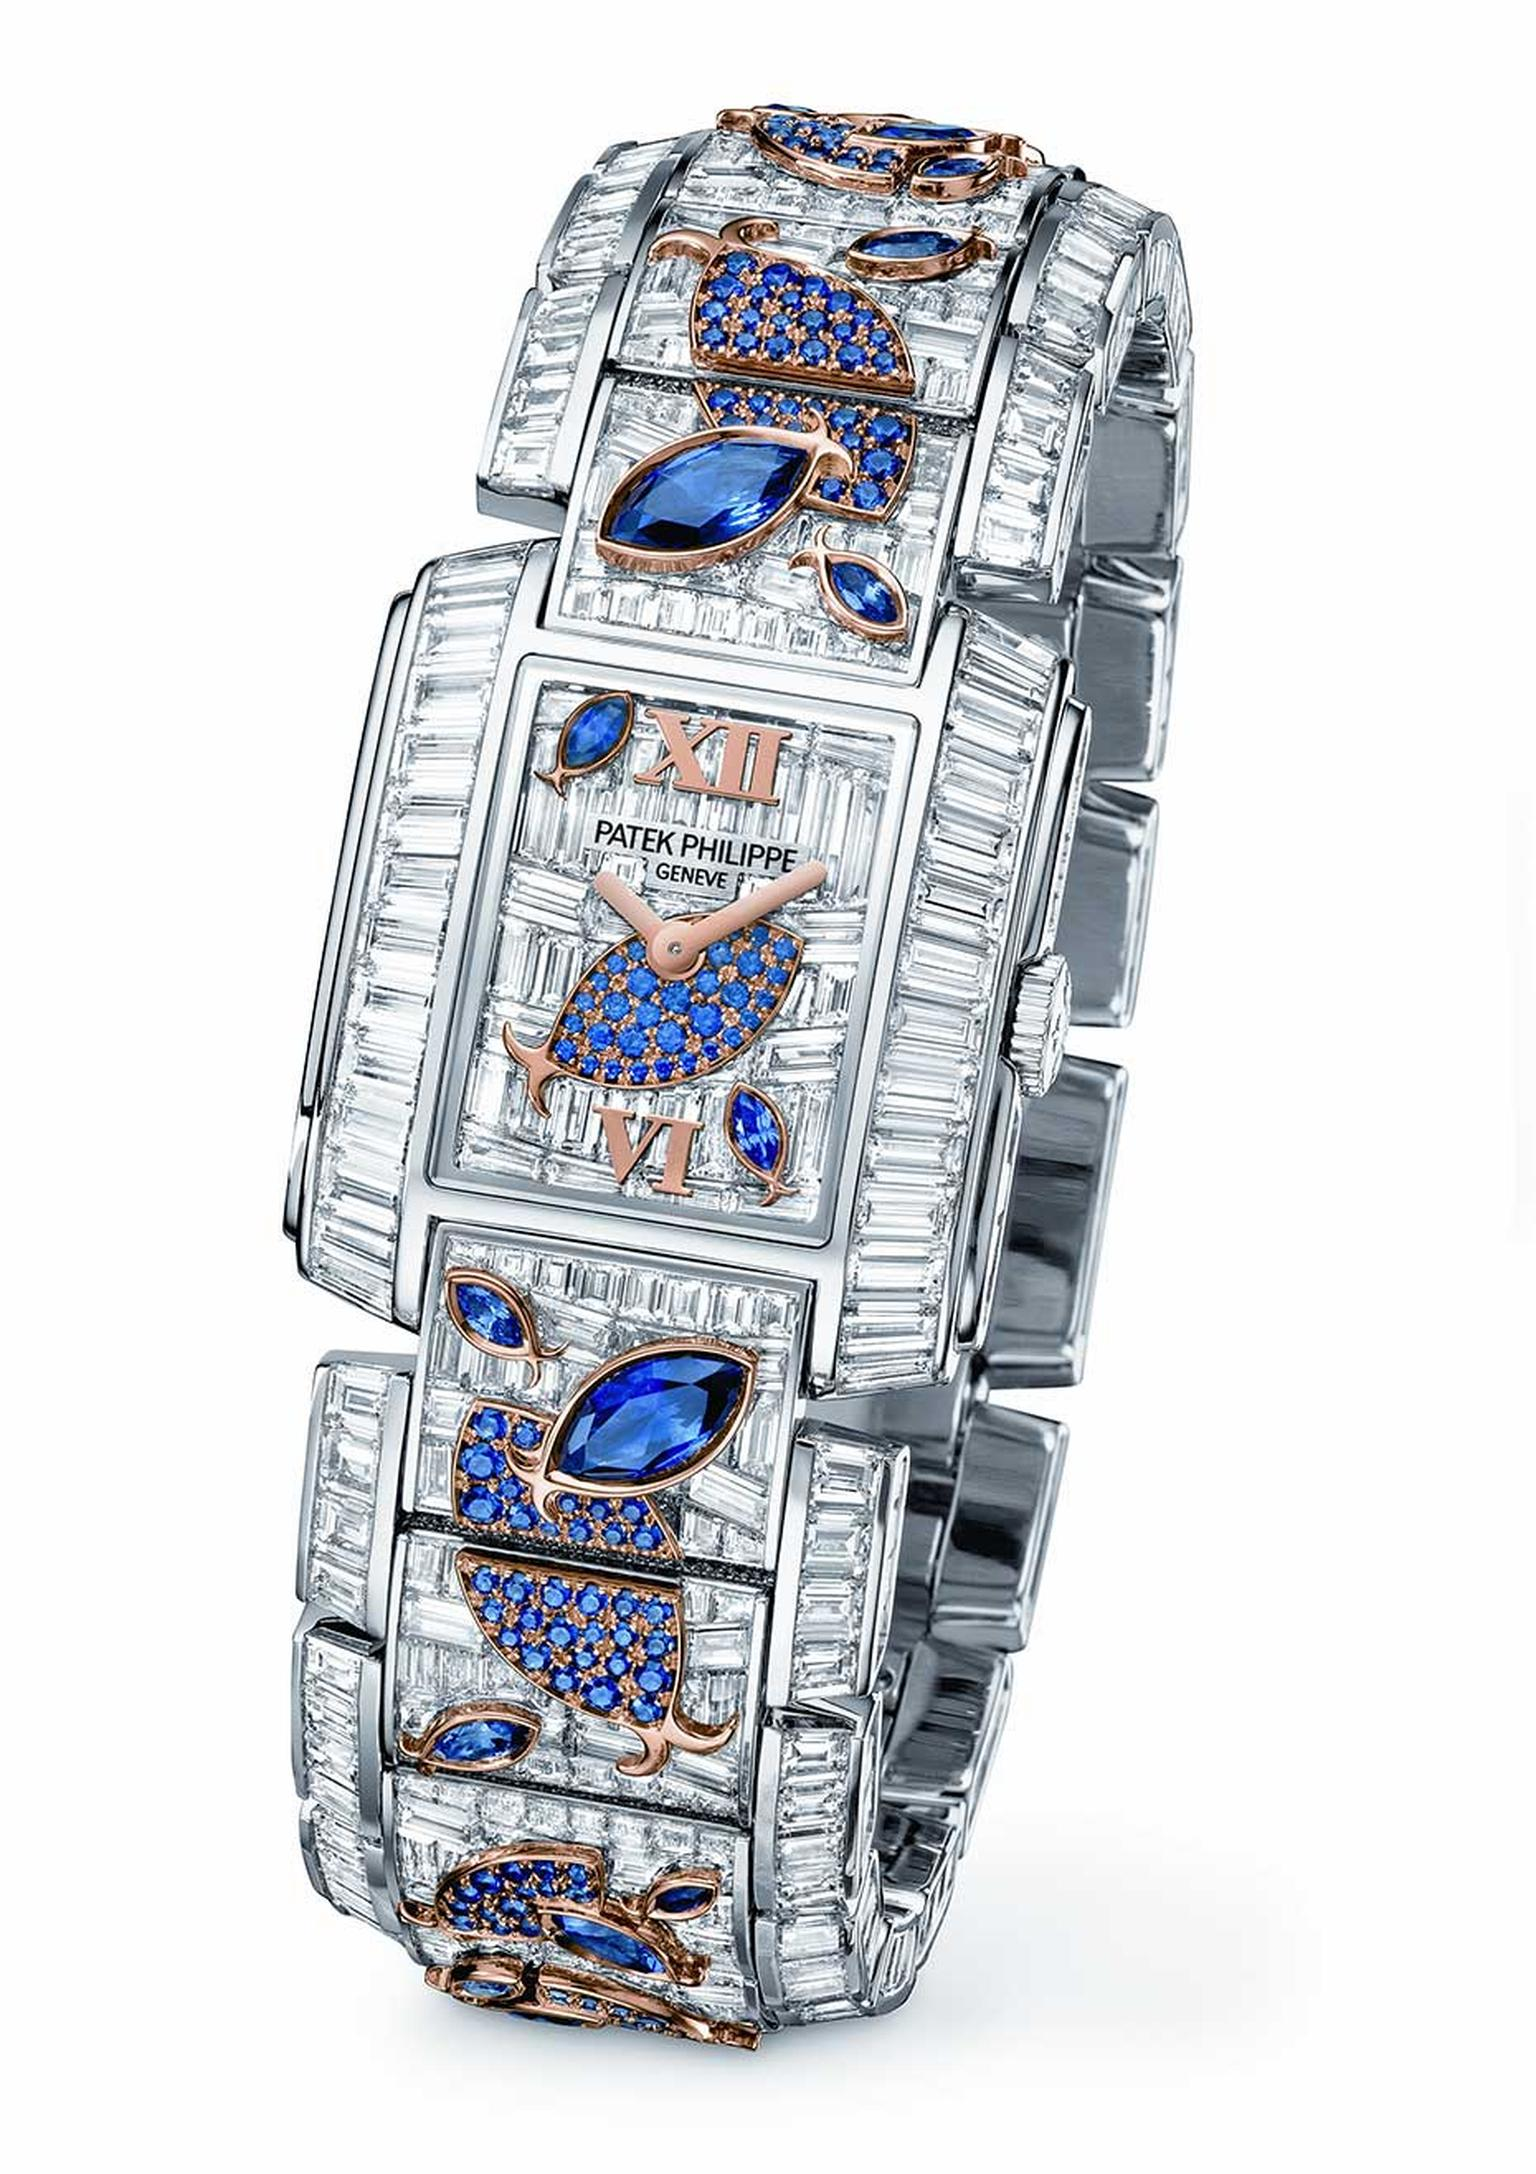 Patek Philippe Aquatic Life high jewellery watch is set with 1,937 diamonds and 43.74 carats of sapphires. This beautiful underwater scene comes to life with the different cuts of precious stones.